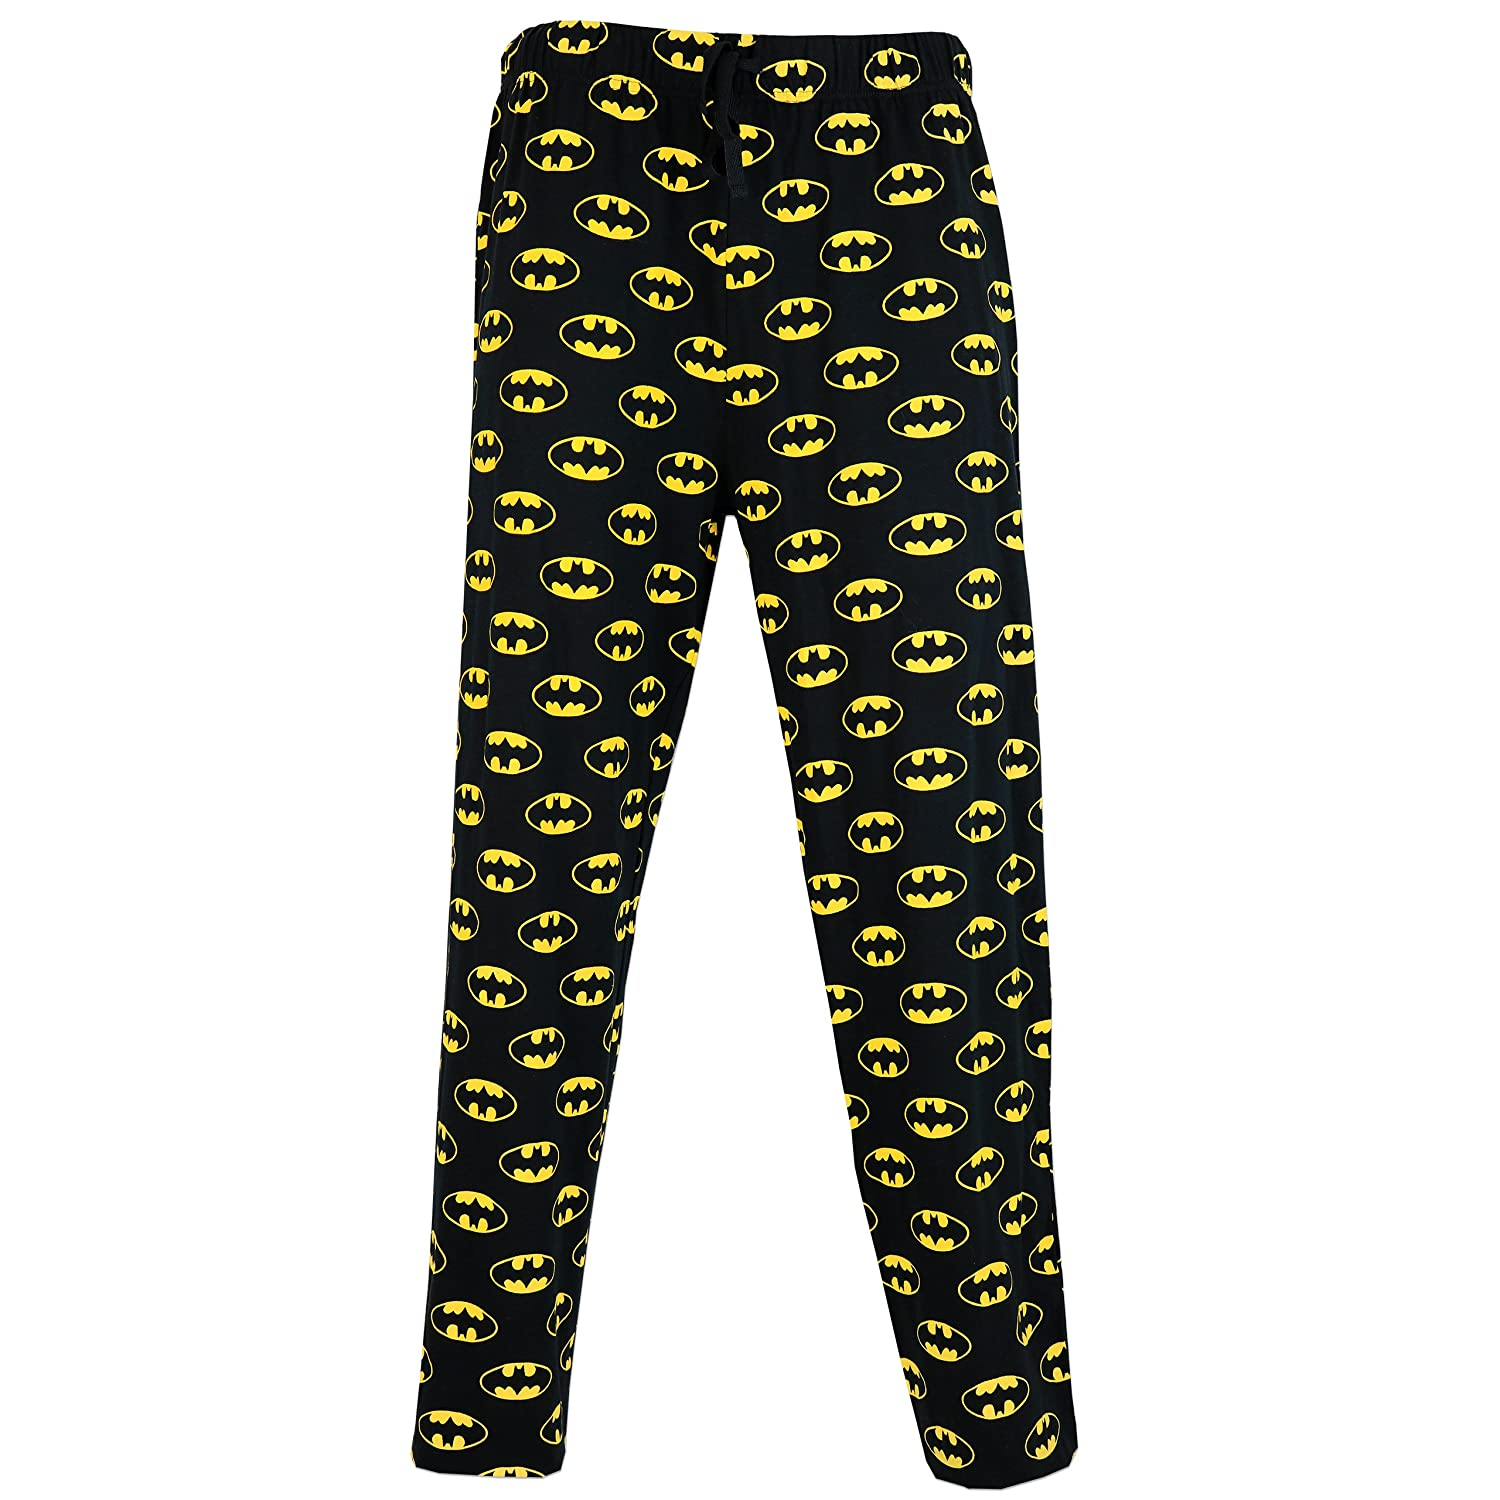 2020 choose genuine big selection of 2019 Batman Mens Pajamas